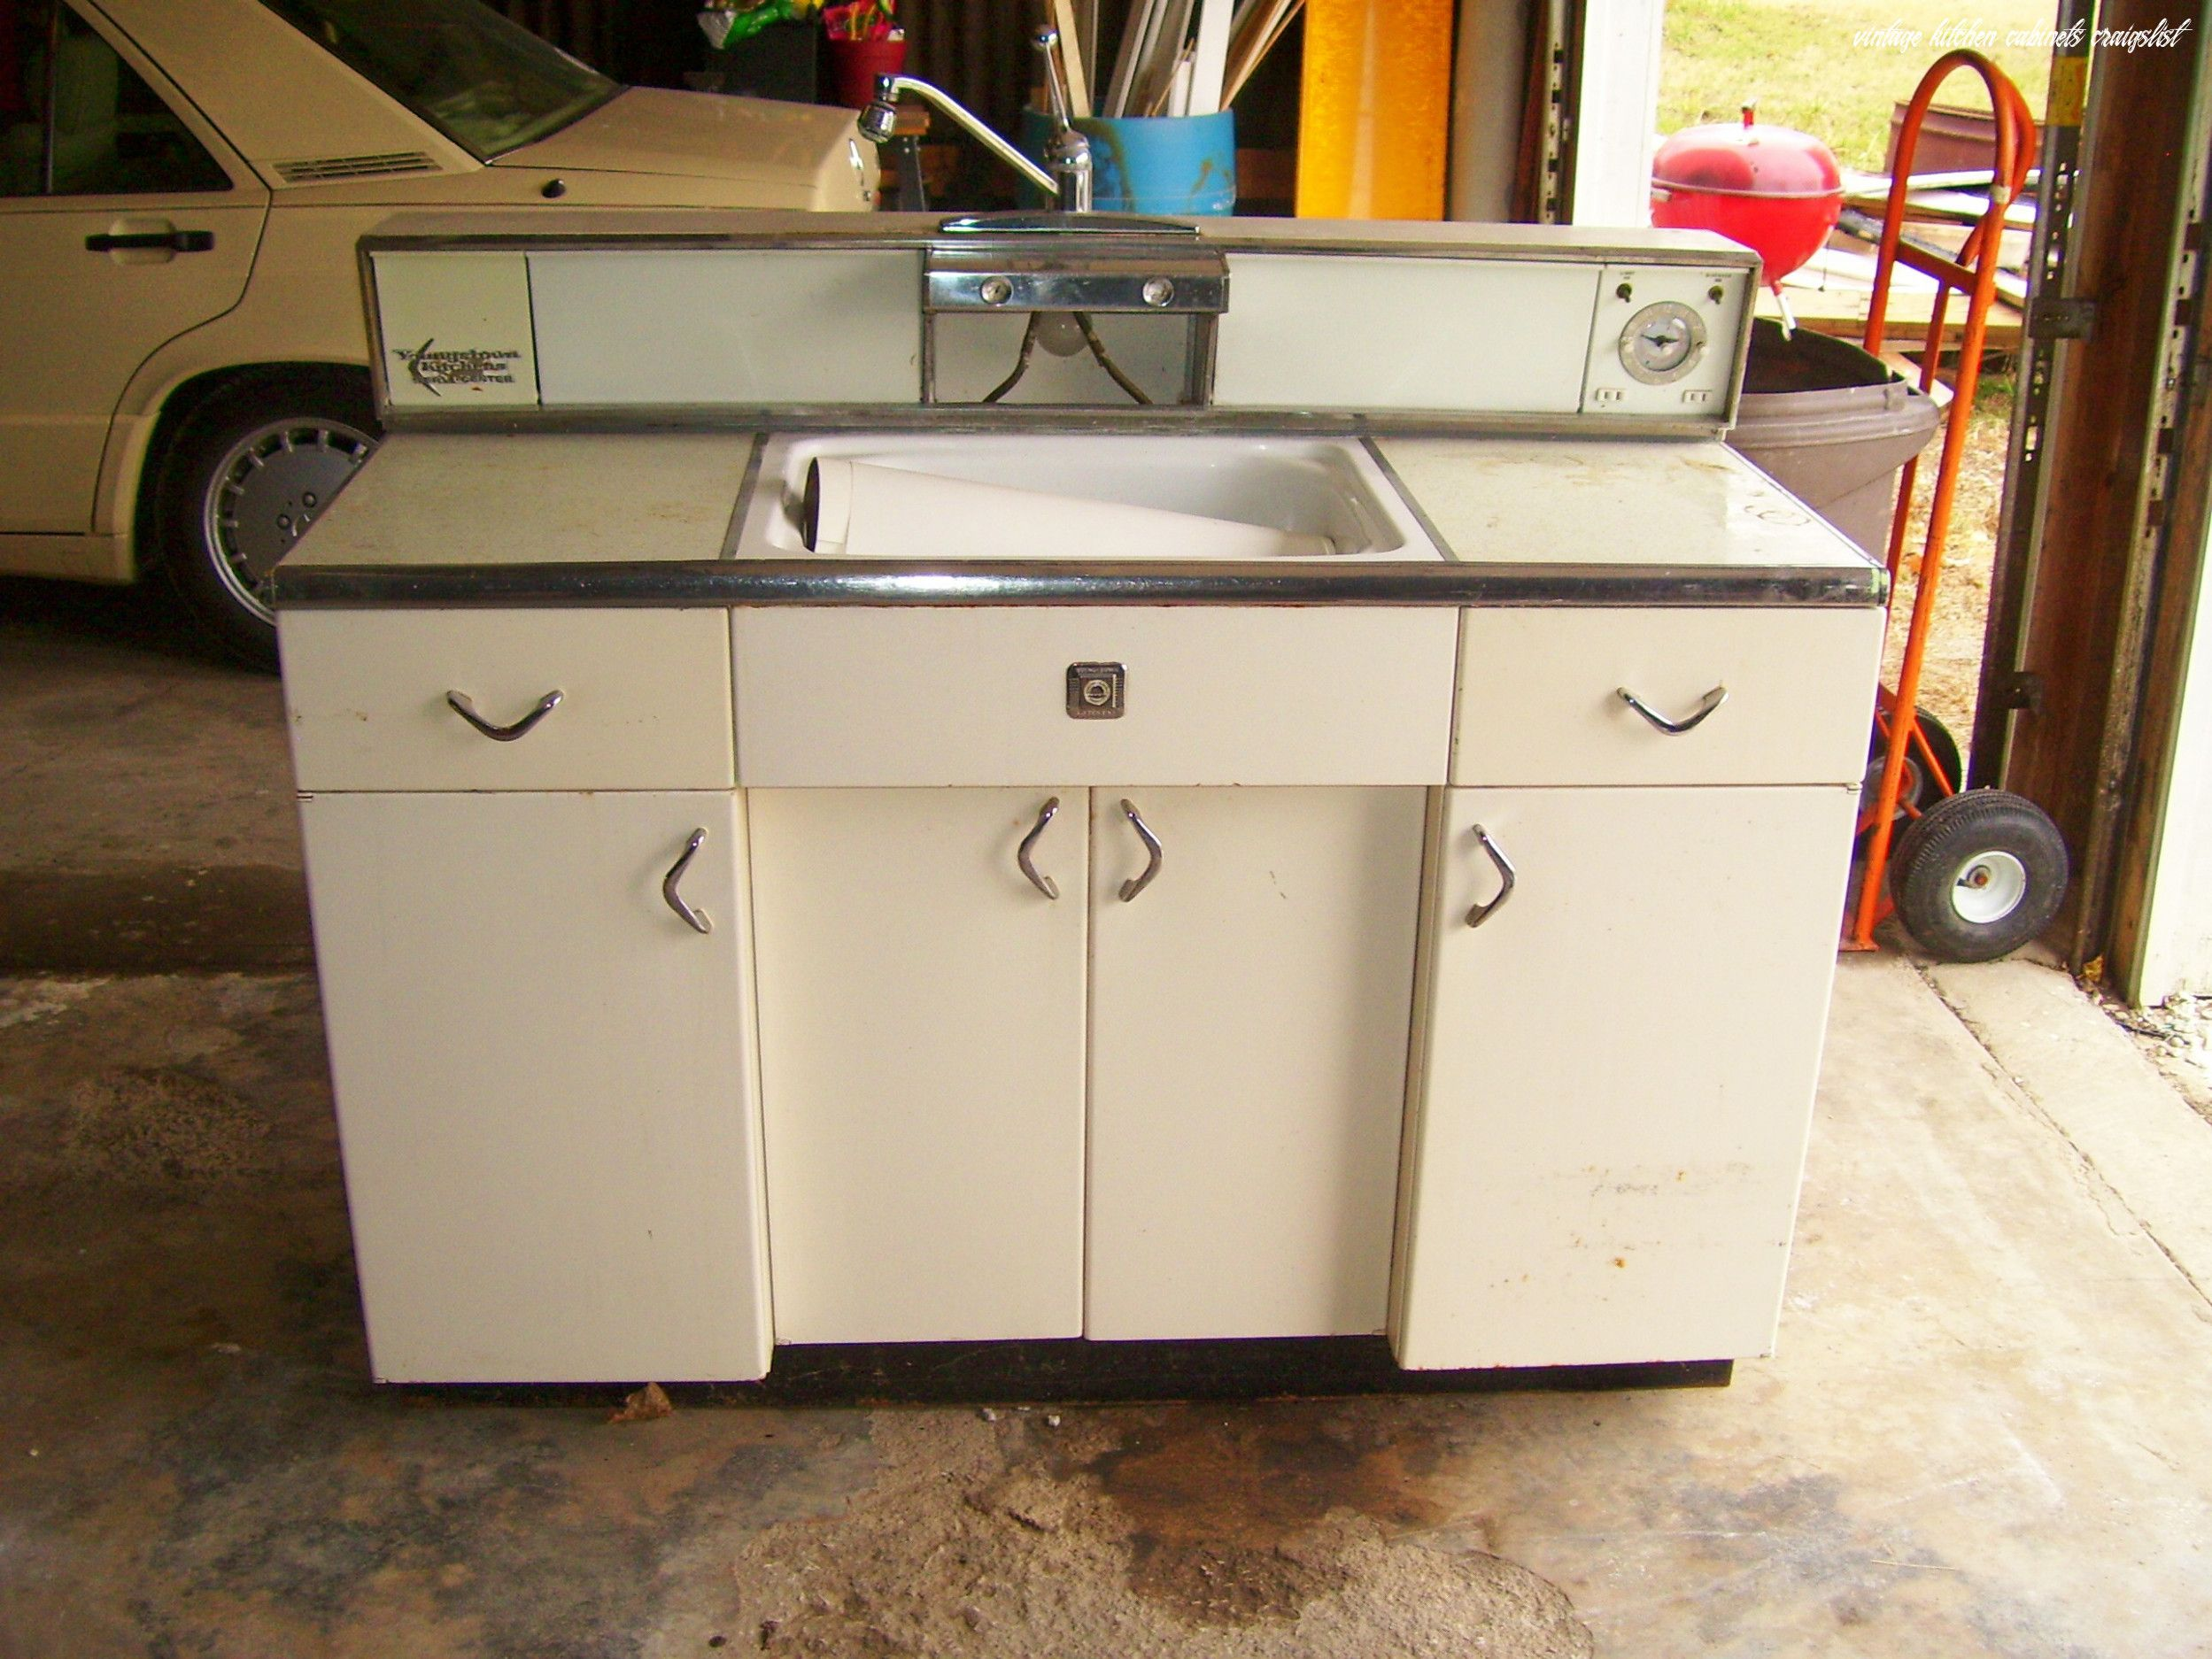 Attending Vintage Kitchen Cabinets Craigslist Can Be A Disaster If You Forget These 15 Rul In 2020 Kitchen Cabinets For Sale Used Kitchen Cabinets Old Kitchen Cabinets